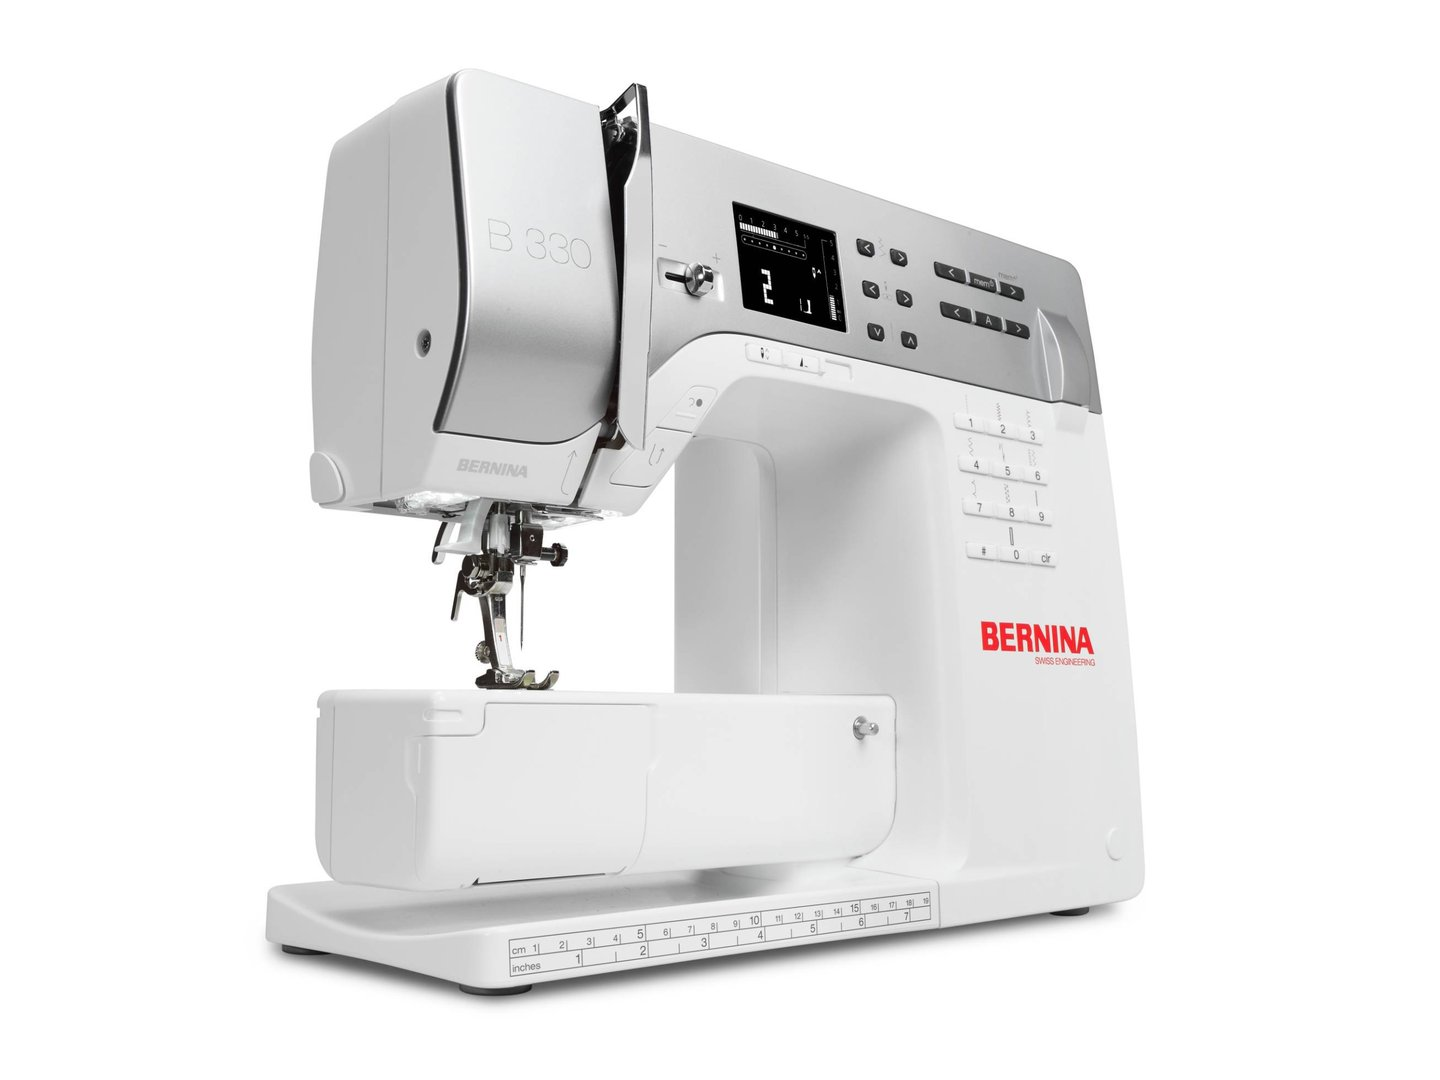 BERNINA 330 Nähmaschine